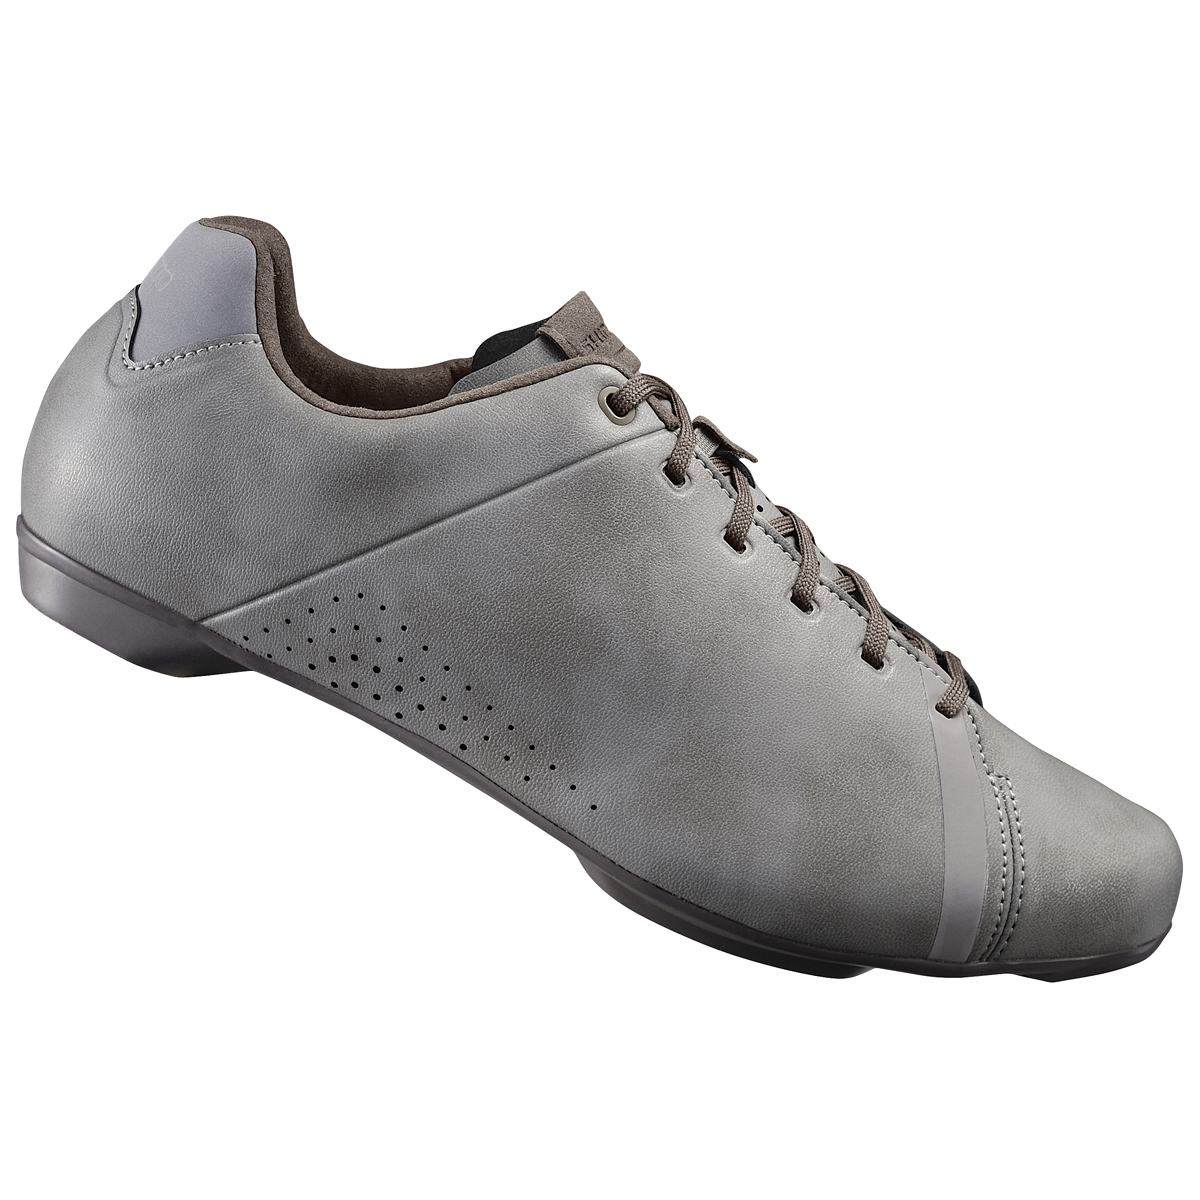 SMN Chaussures Route RT400 Gris